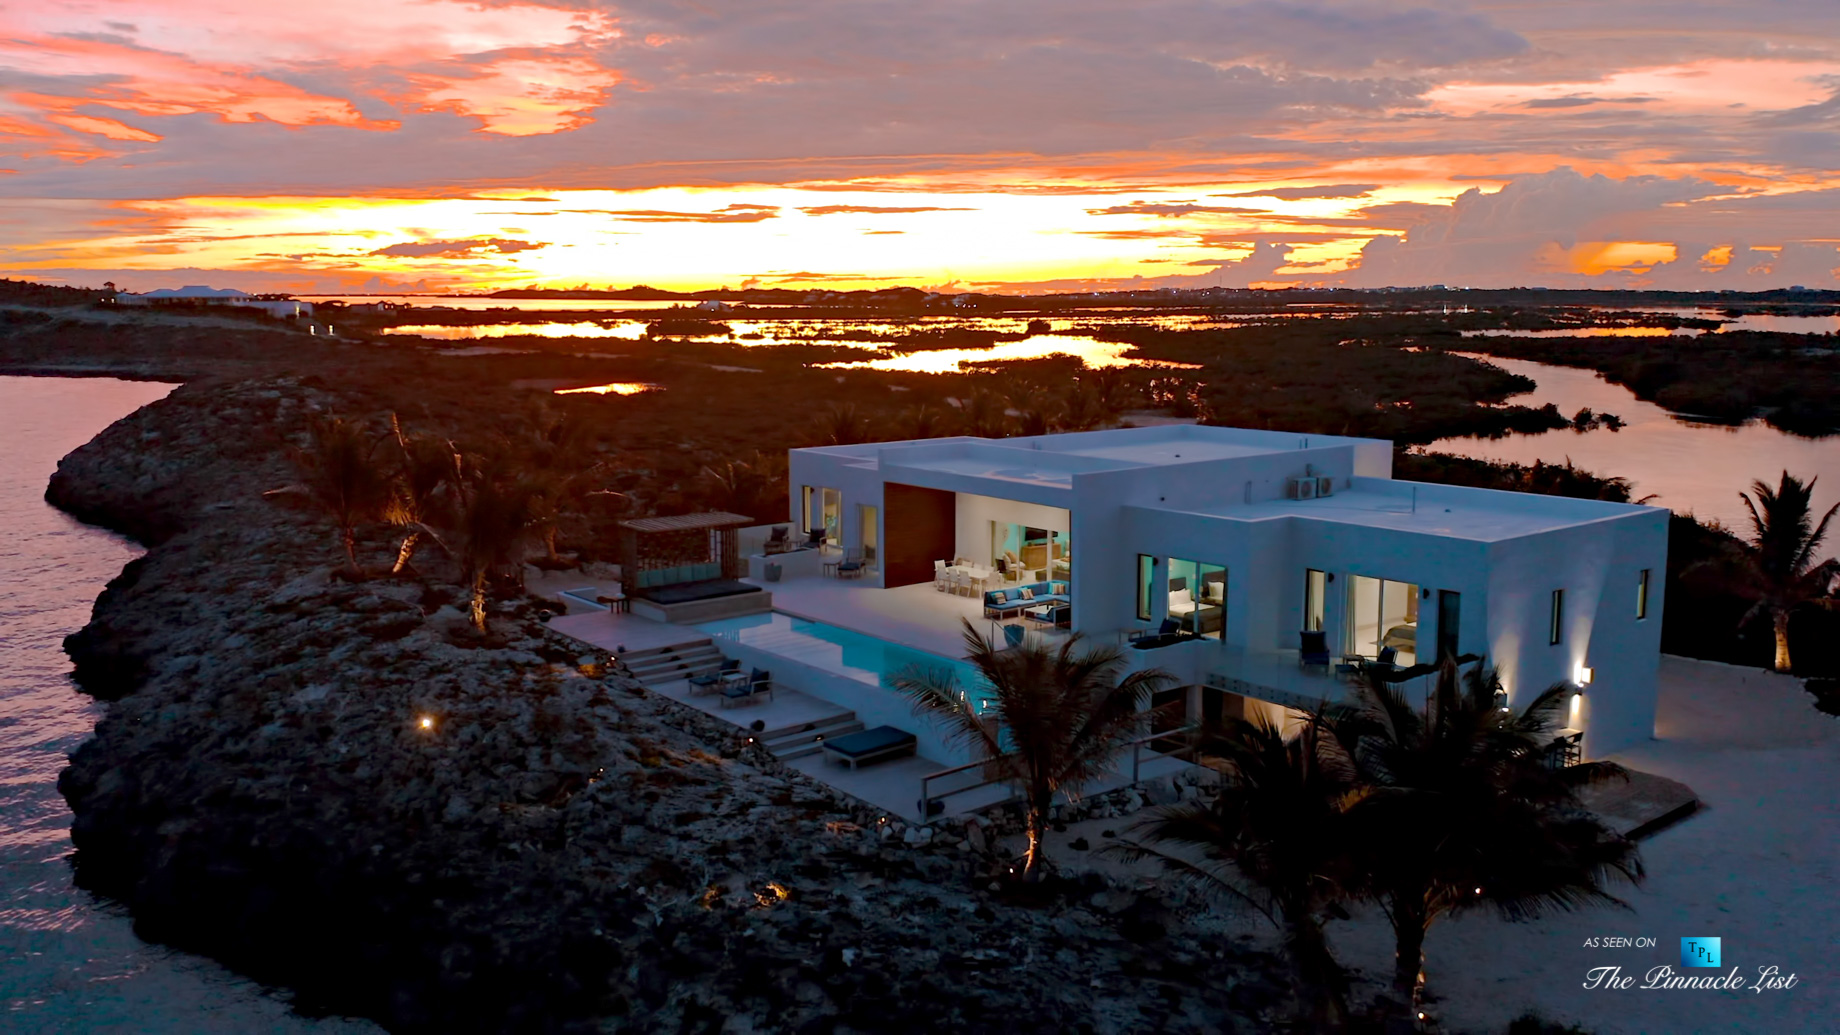 Tip of the Tail Villa – Providenciales, Turks and Caicos Islands – Aerial Caribbean Villa Oceanfront Sunset View – Luxury Real Estate – South Shore Peninsula Home